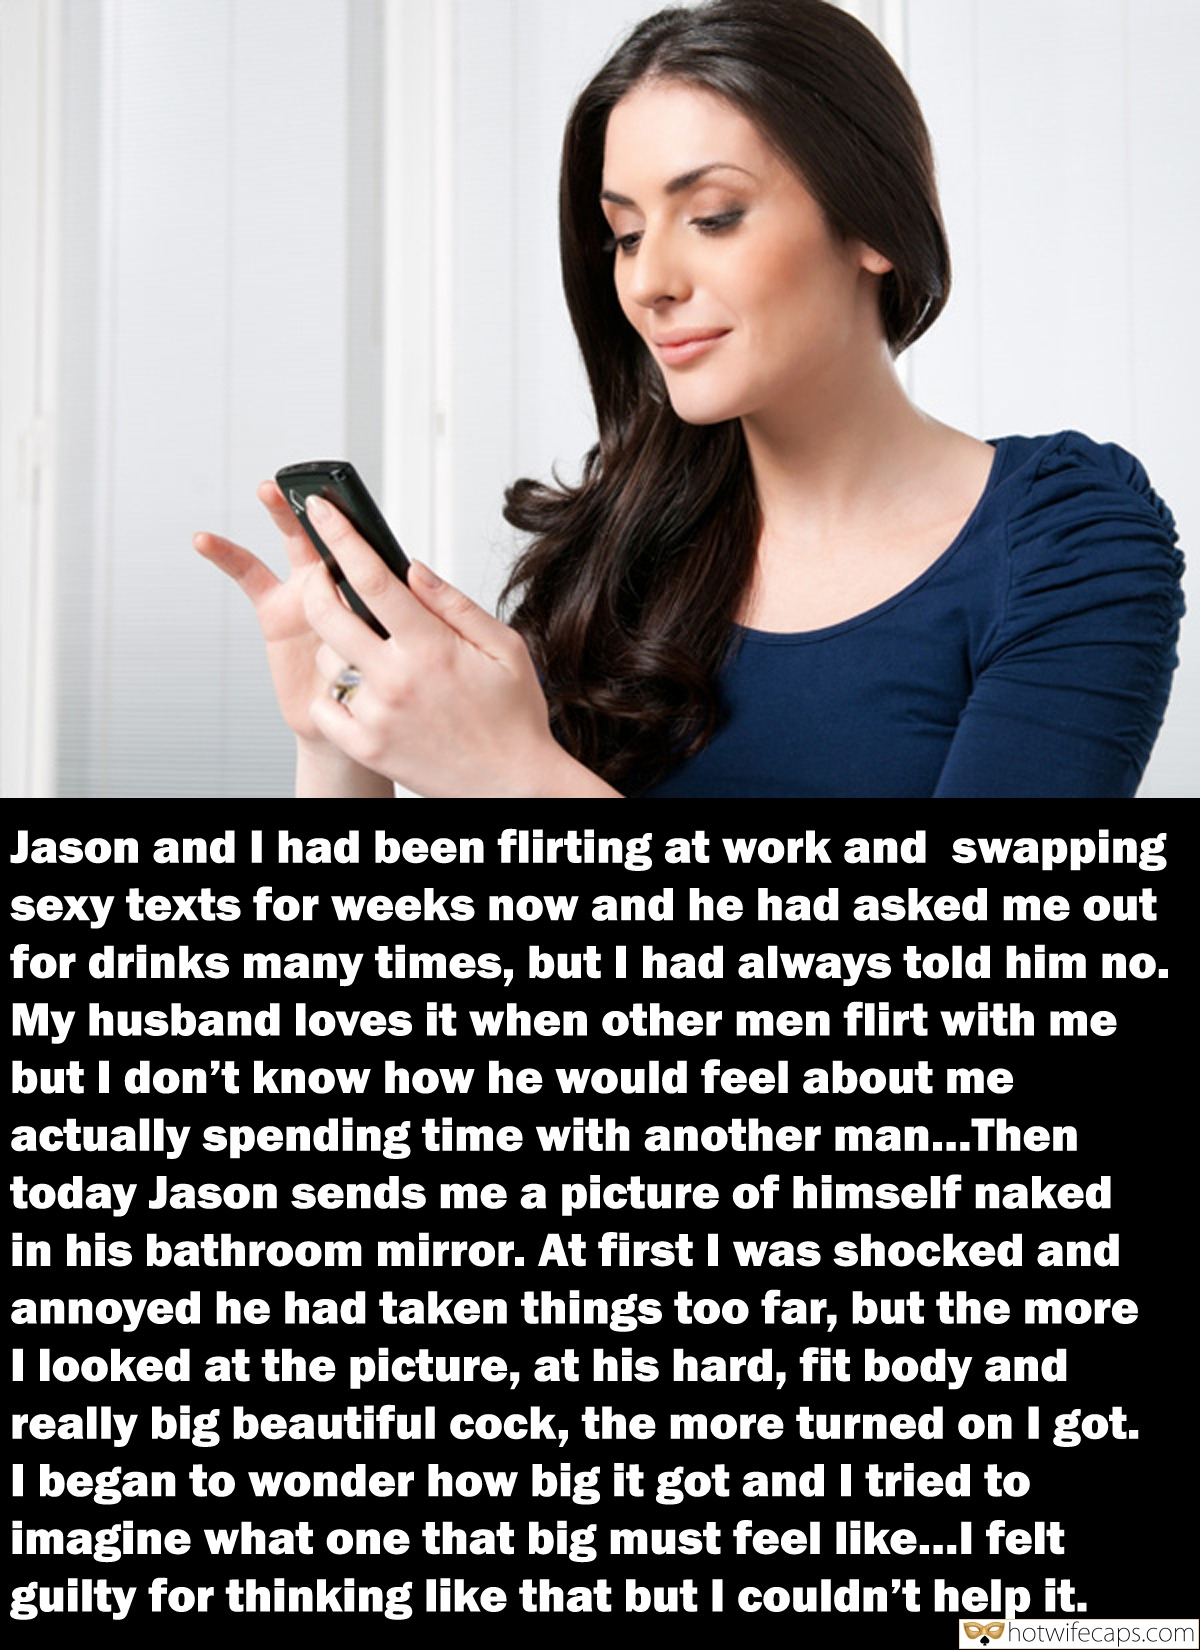 Cuckold Stories  hotwife caption: Jason and I had been flirting at work and swapping sexy texts for weeks now and he had asked me out for drinks many times, but I had always told him no. My husband loves it when other men flirt...